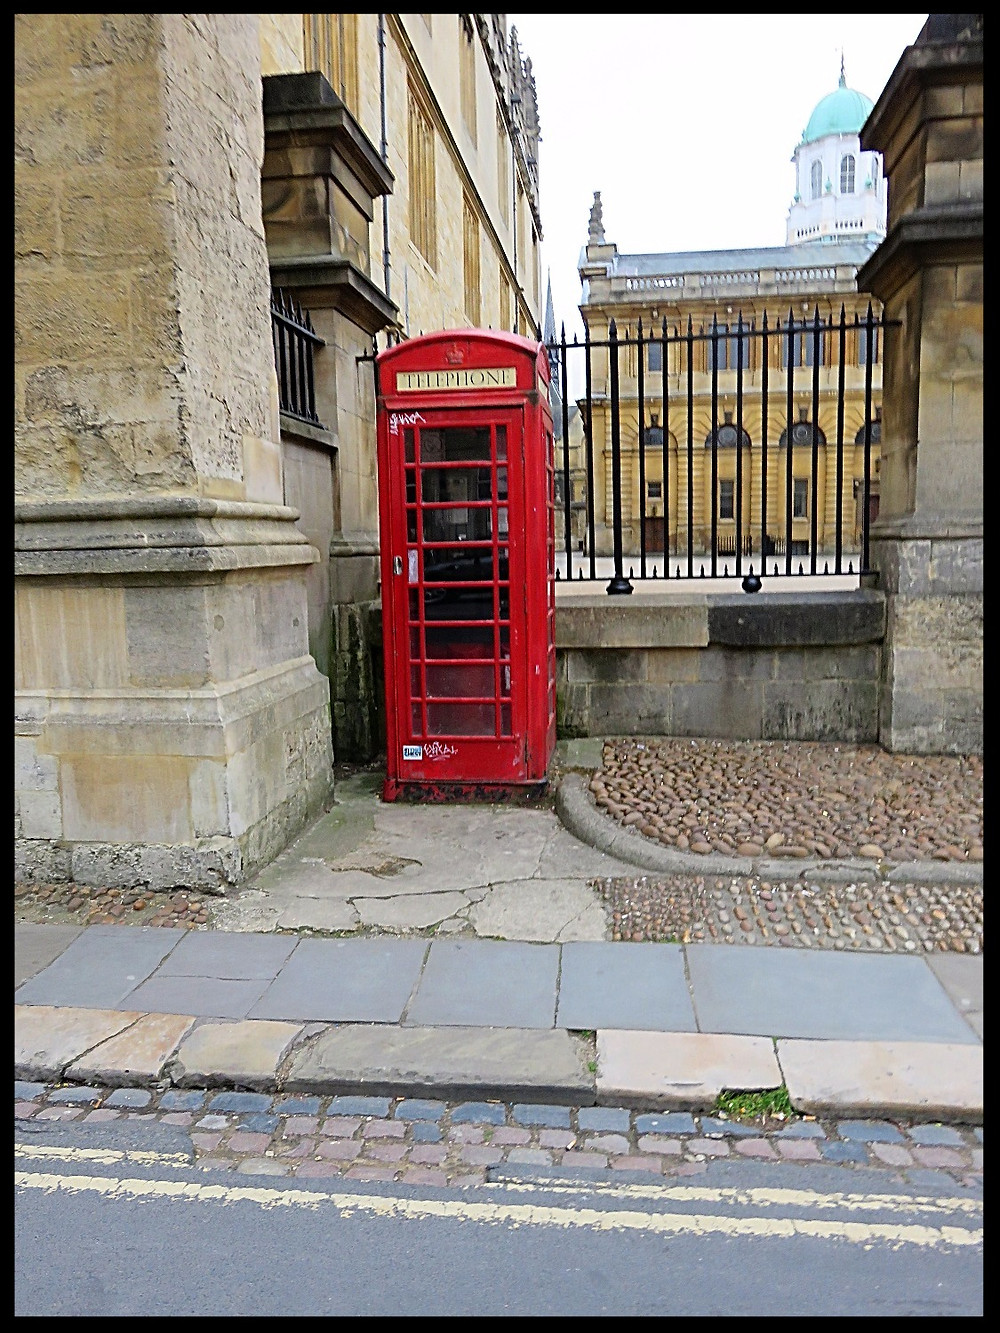 Telephone booth, Oxford, England